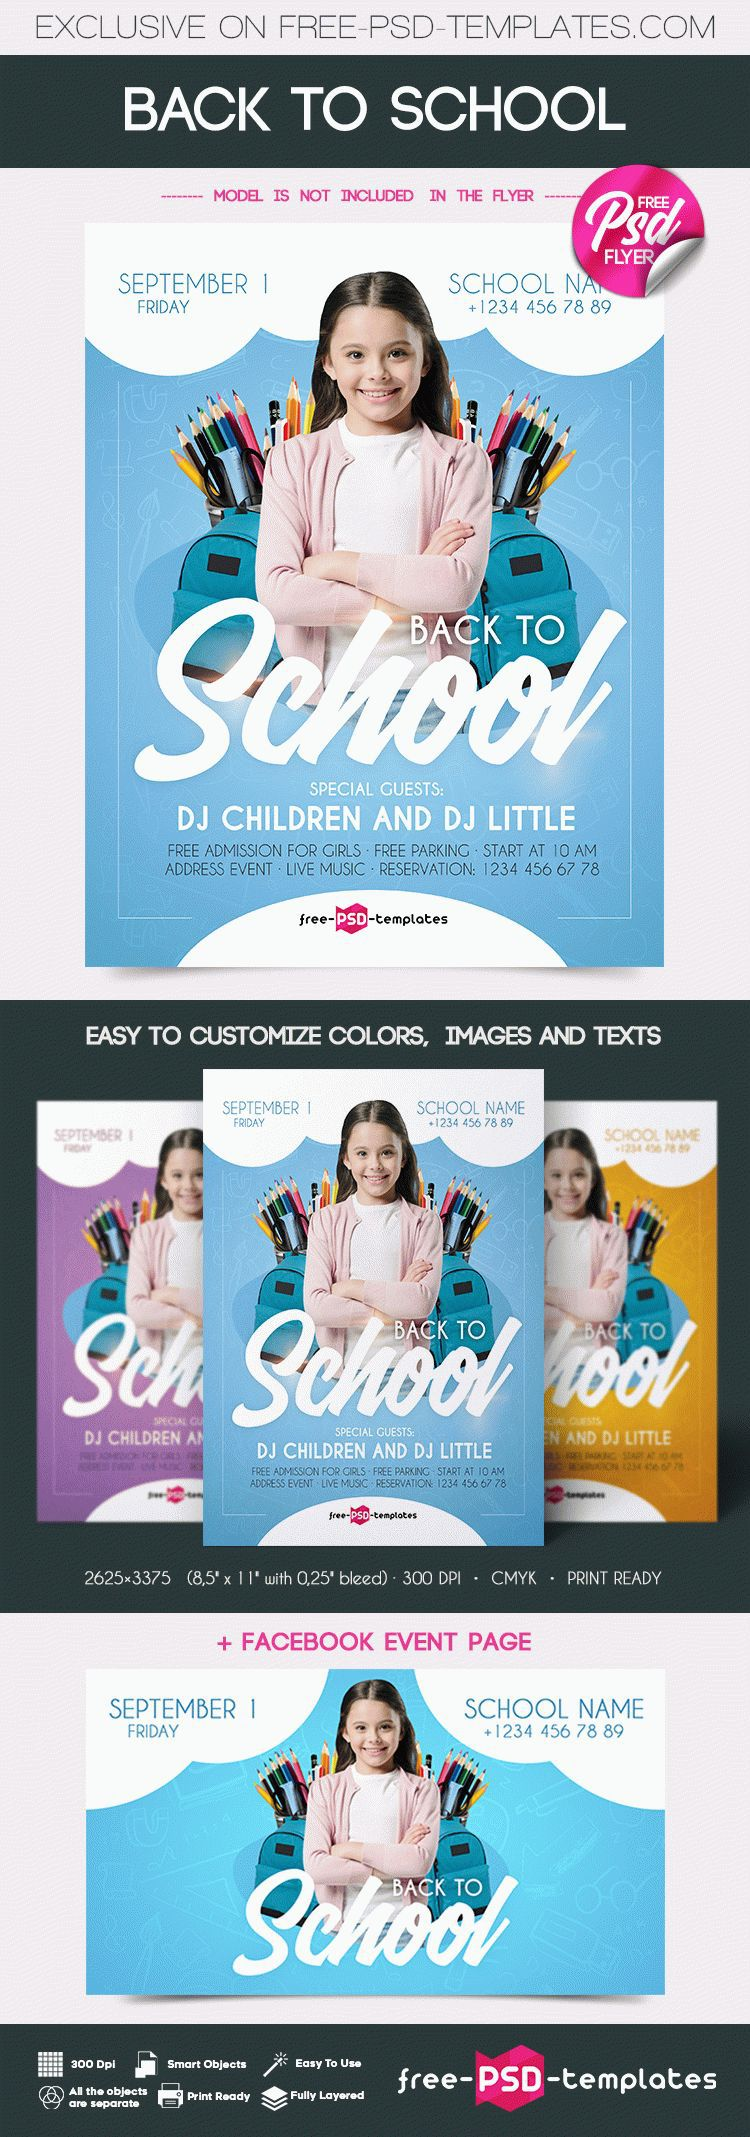 006 Excellent Free School Flyer Template Concept  Templates Vacation Bible For Microsoft Word EventFull